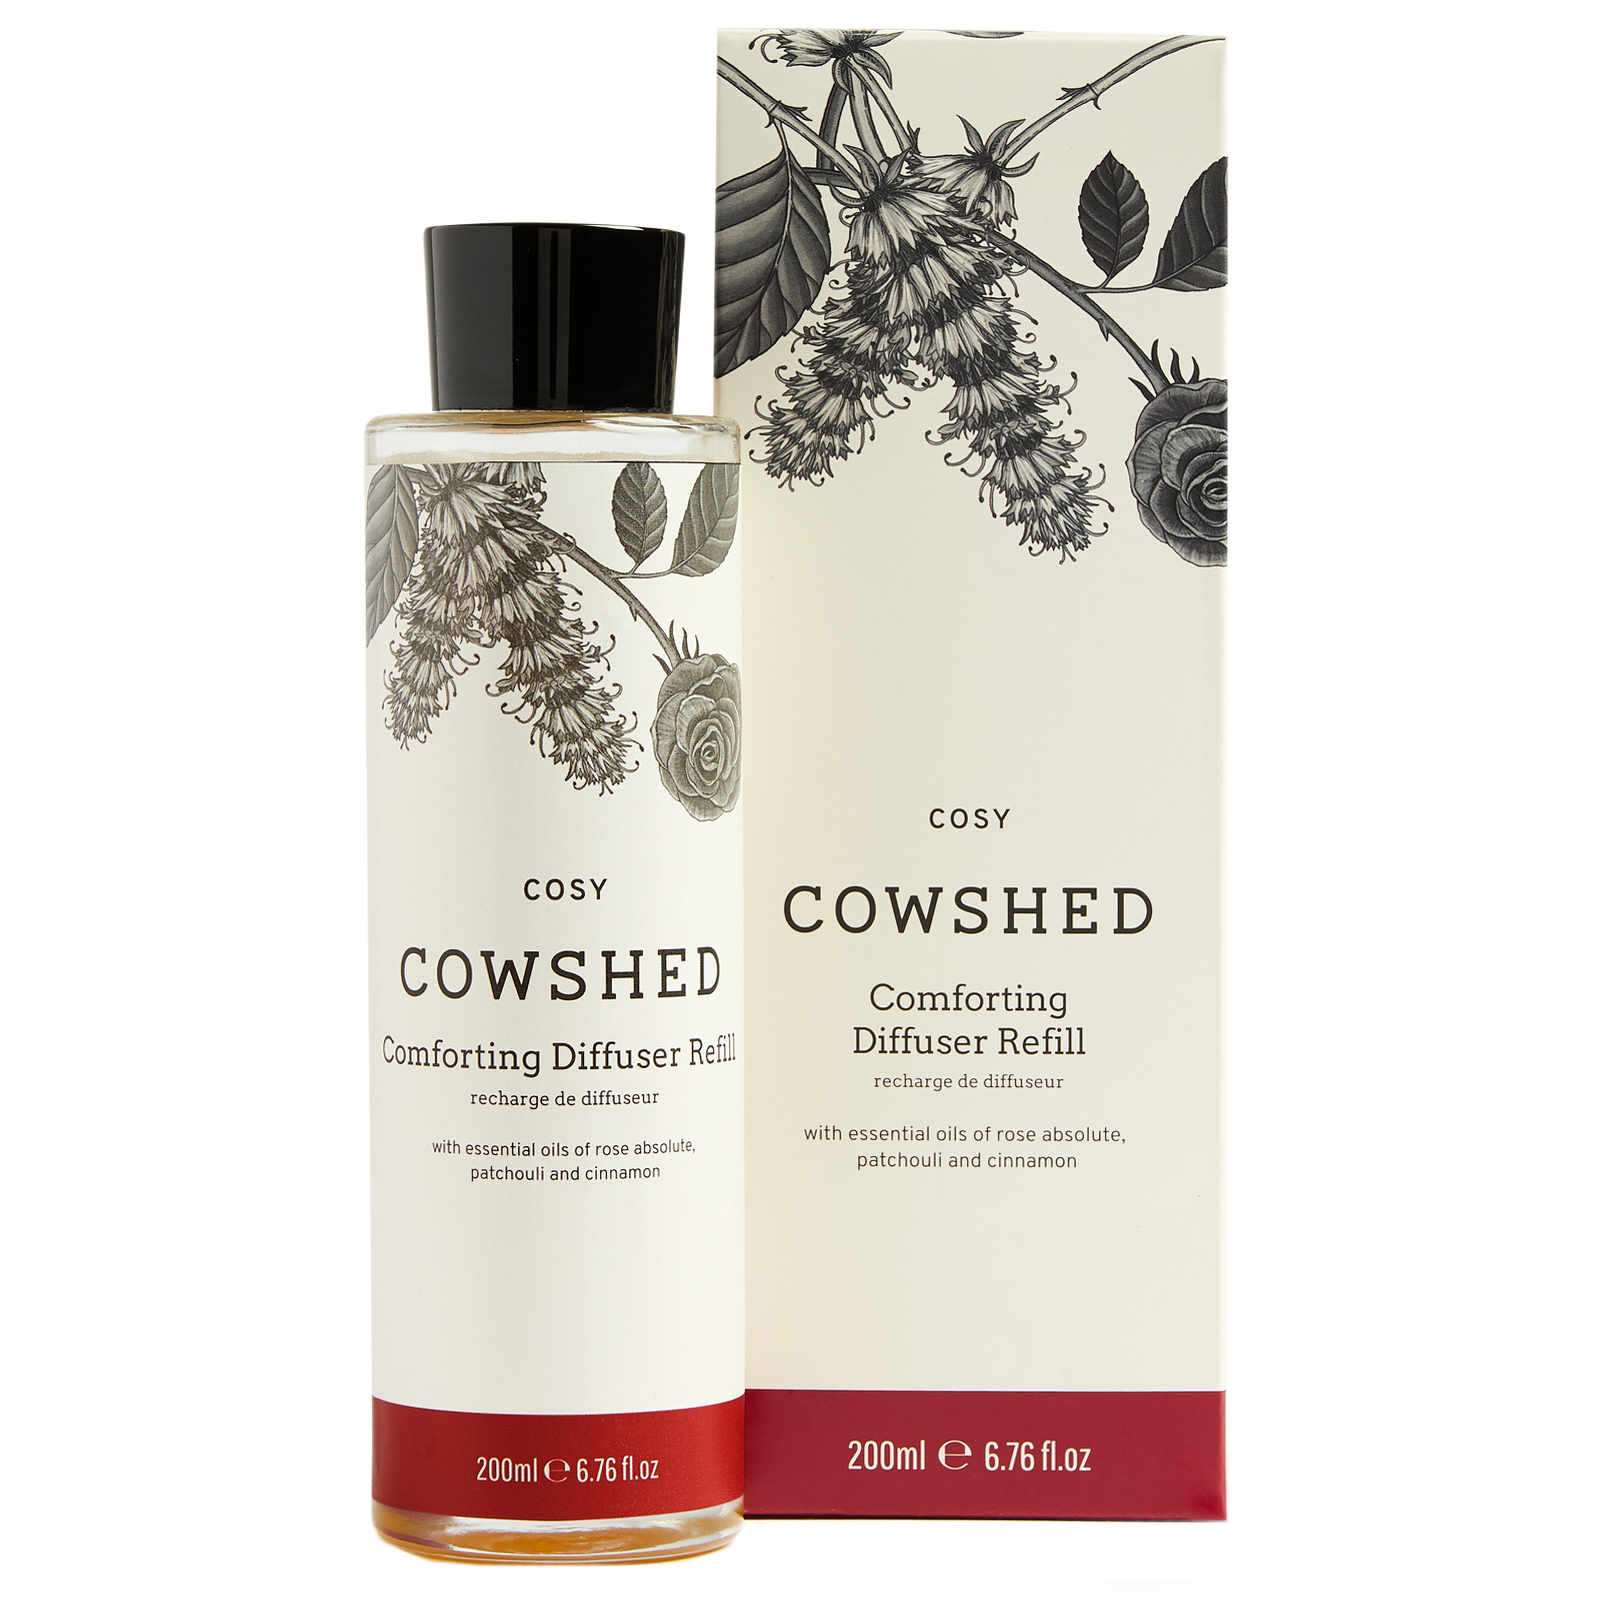 Cowshed At Home Cosy Diffuser Refill 200ml